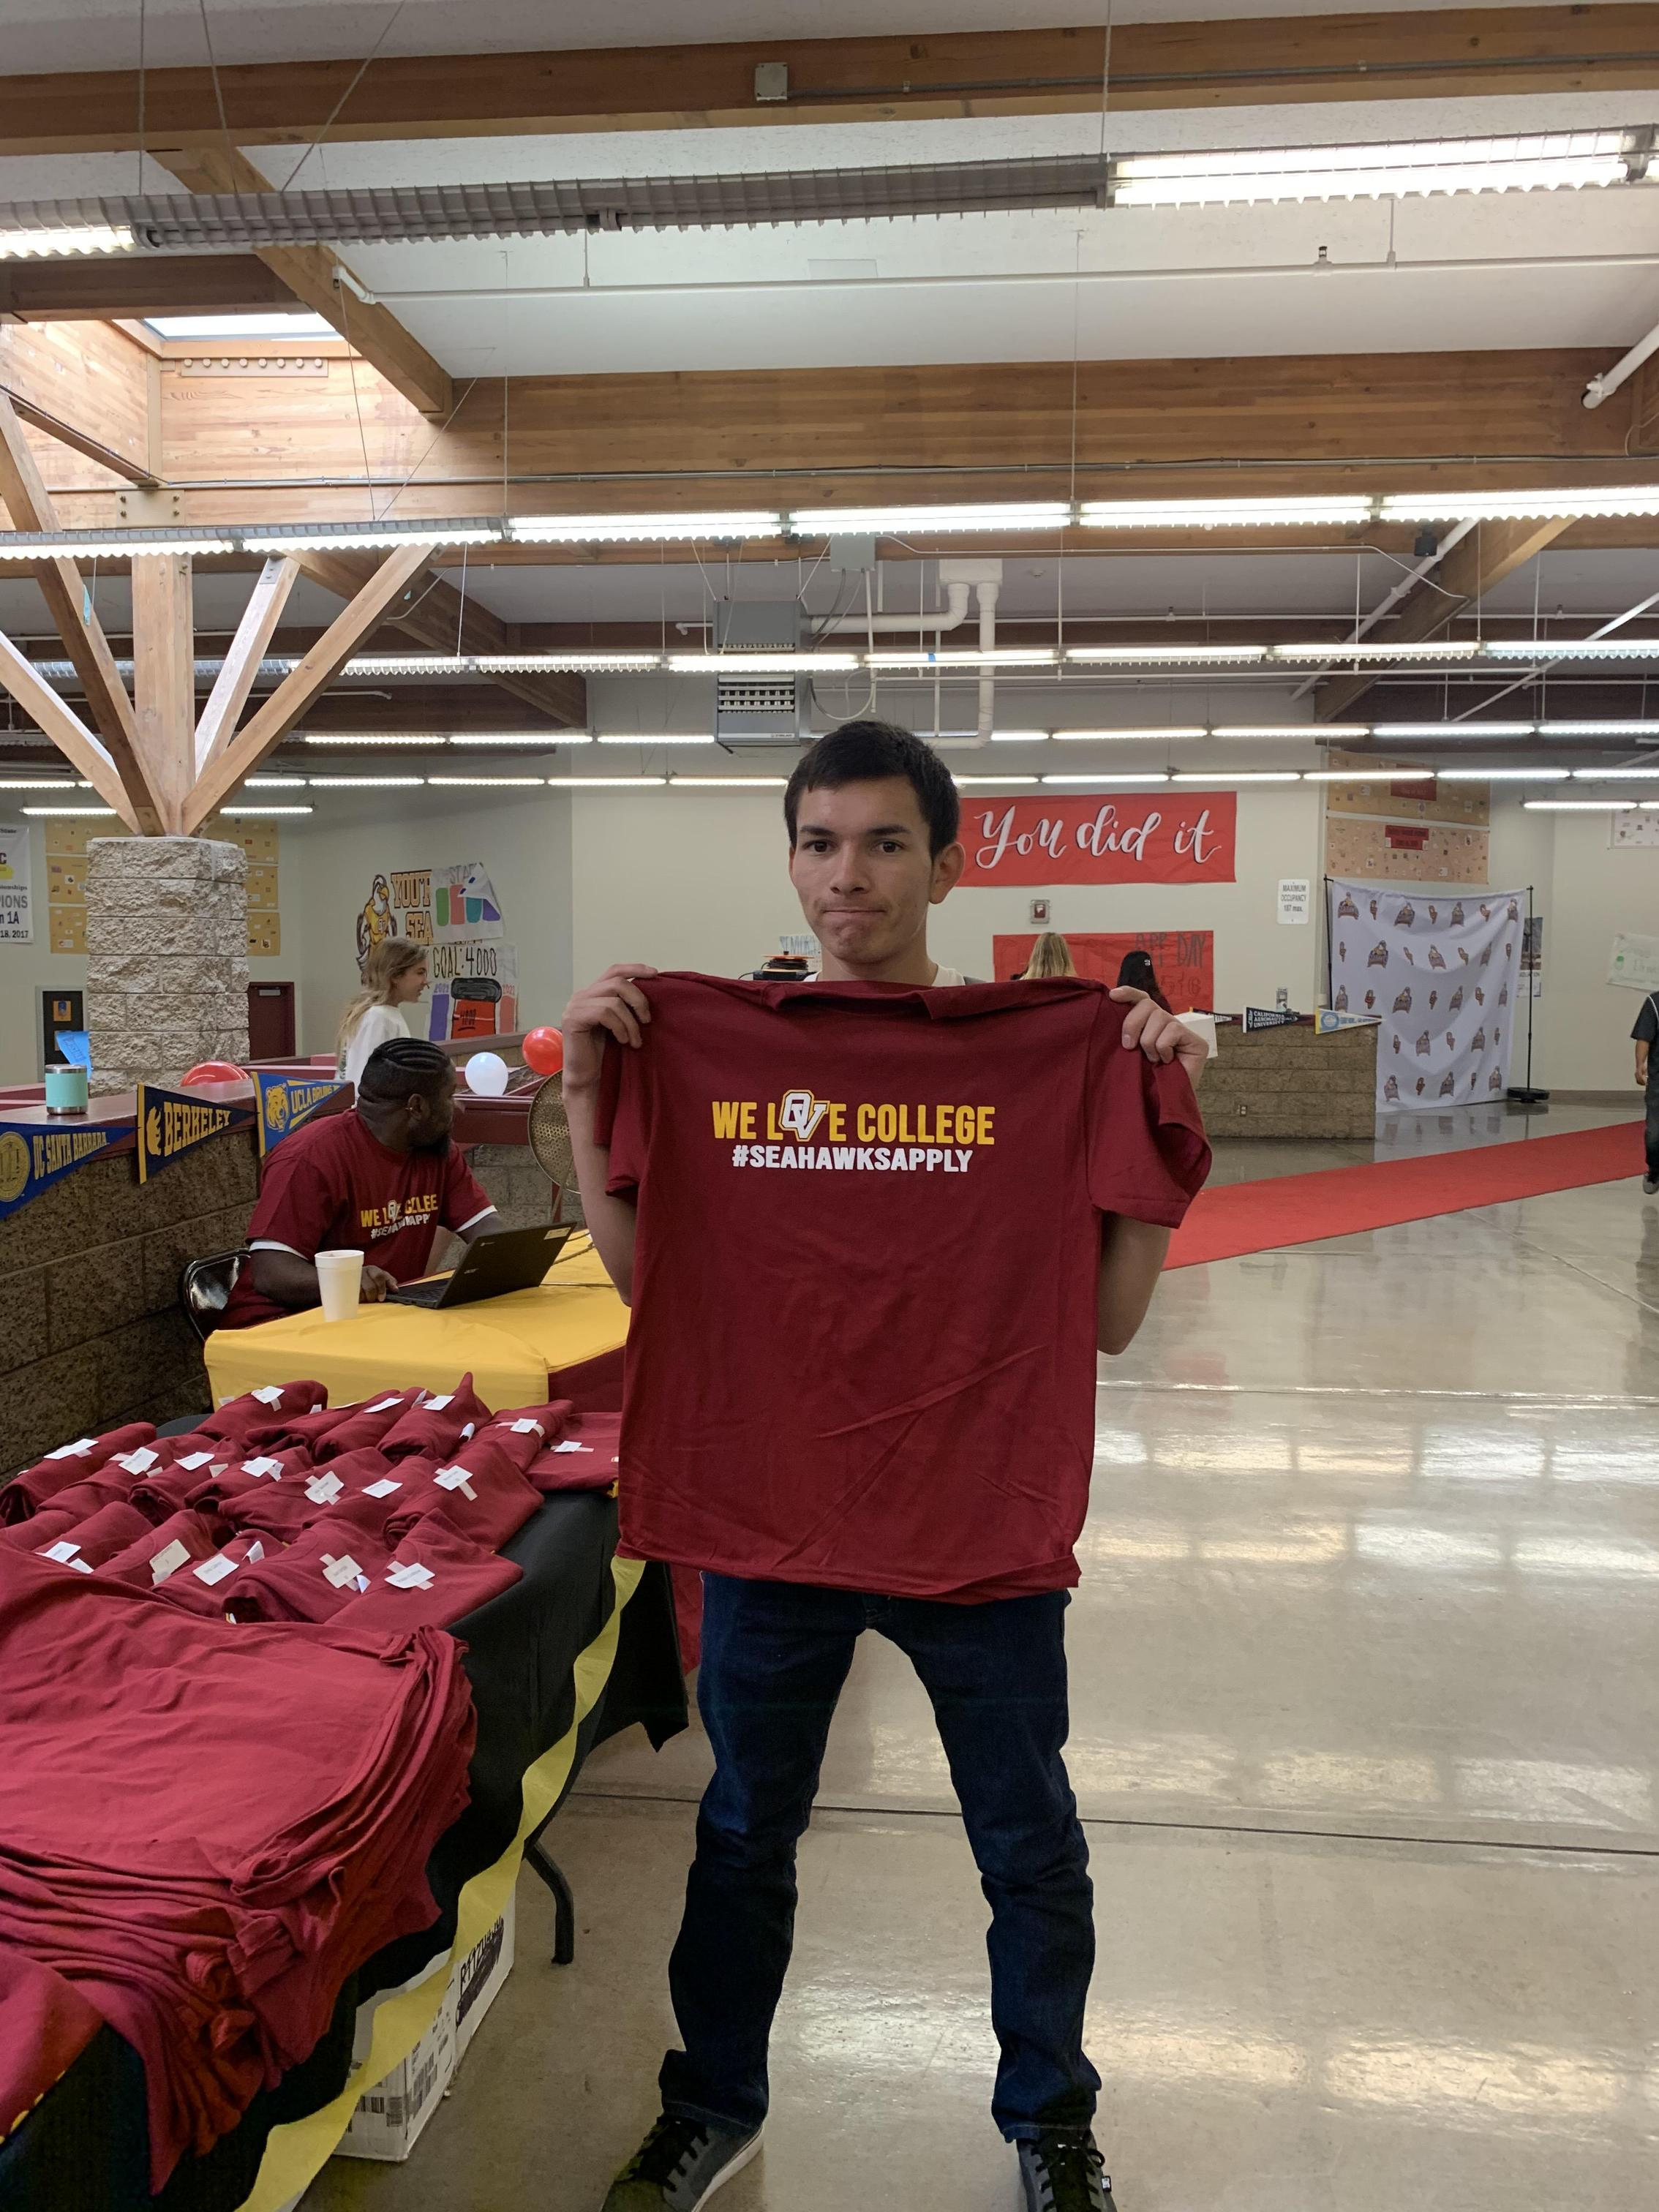 College Application Day Special T-shirts